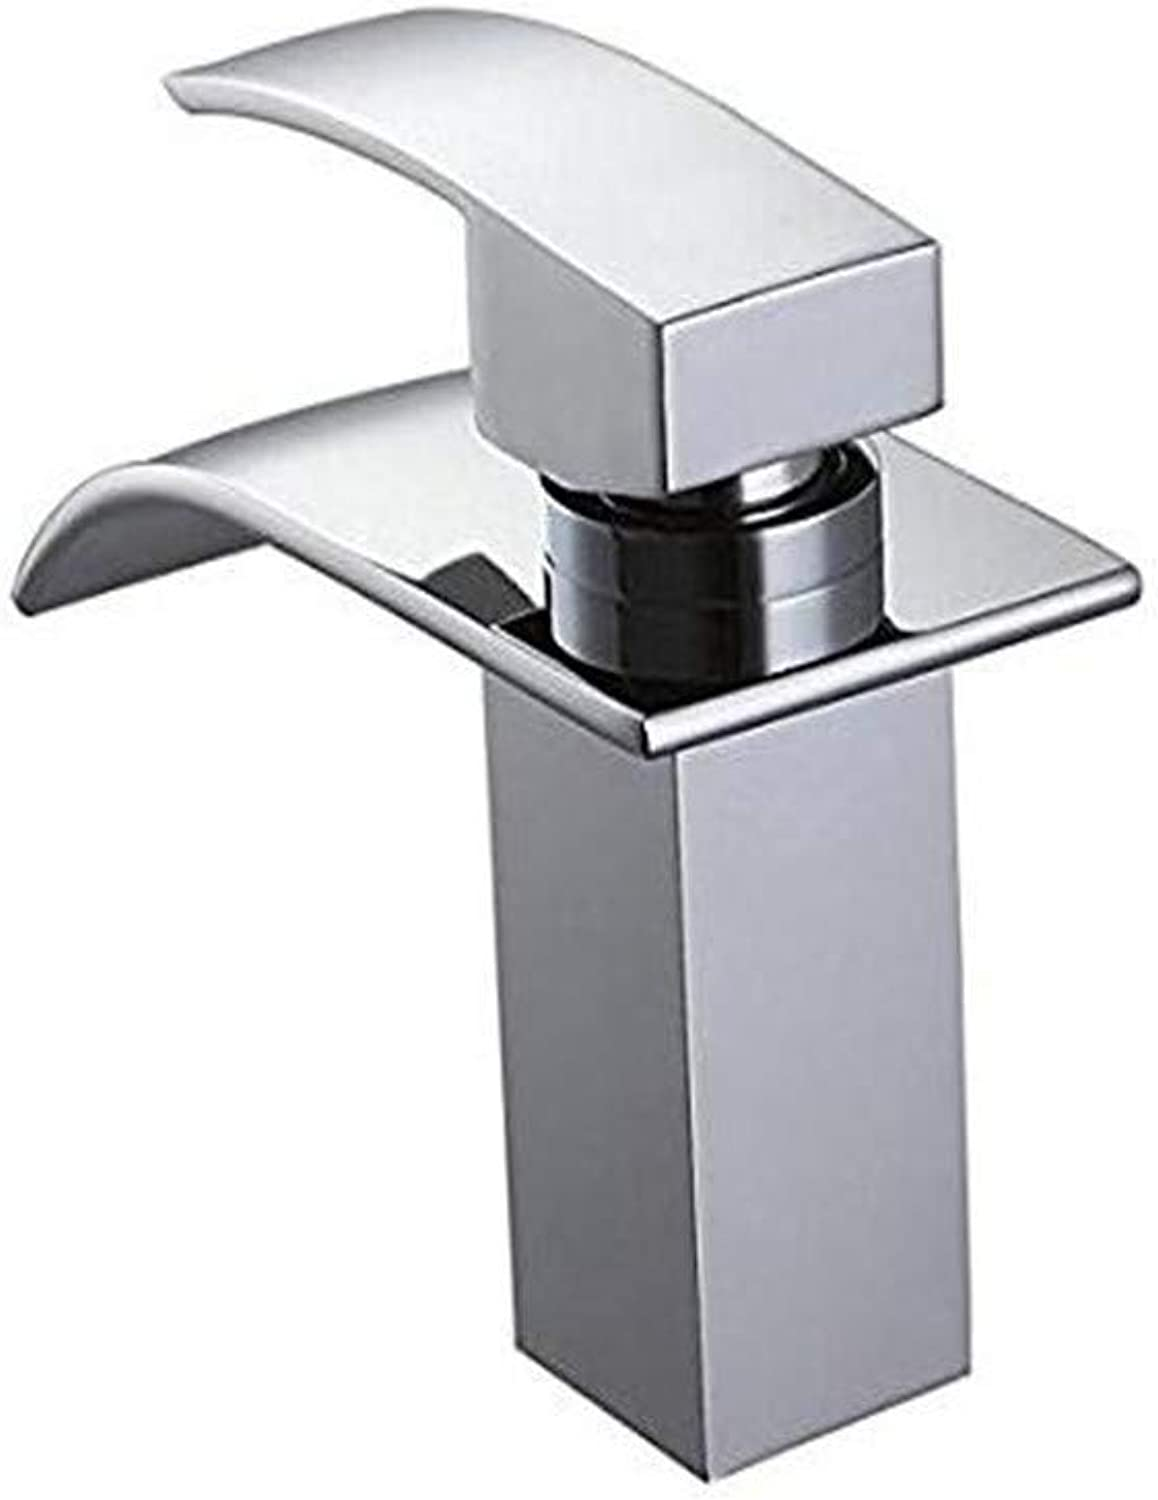 Oudan Faucet Basin Faucet Kitchen Faucetbathroom Sink Tapdeck Mount Waterfall Bathroom Faucet Vanity Vessel Sink Mixer Tap Cold and Hot Water Tap (color   -, Size   -)